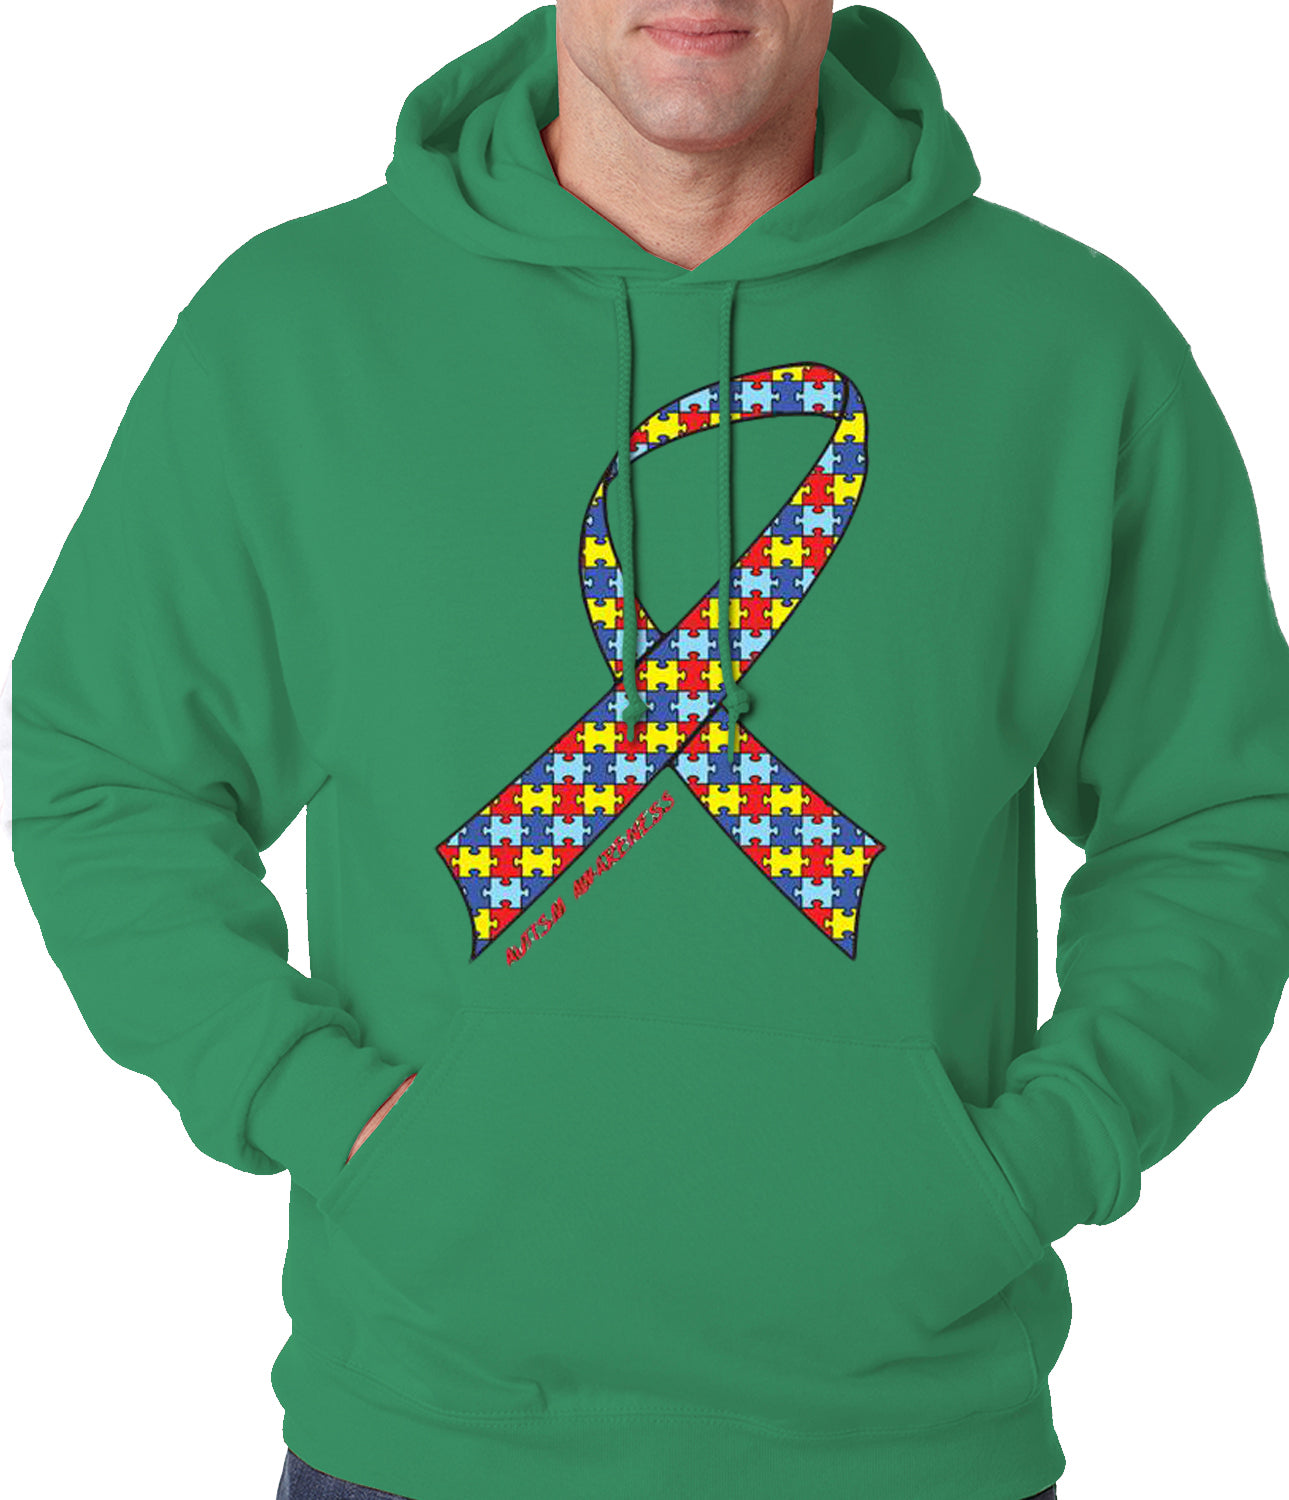 Autism Awareness Ribbon Hoodie